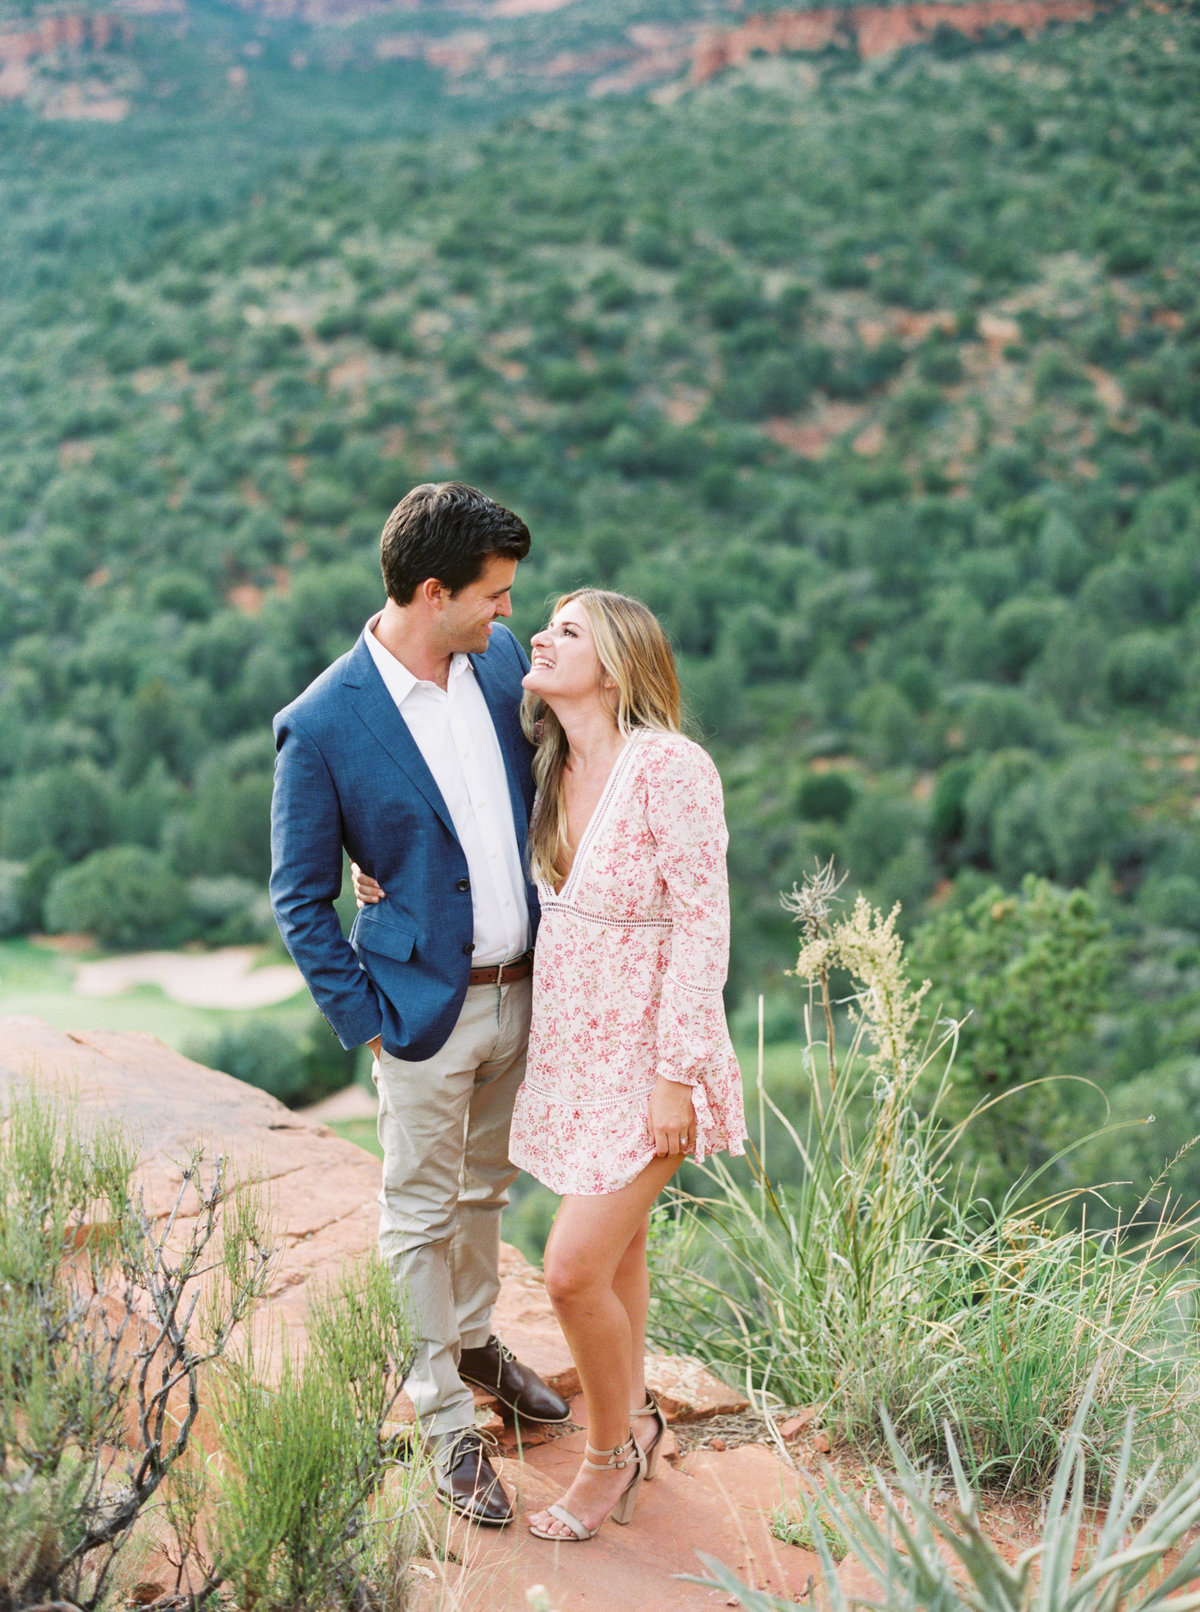 Sedona Arizona Engagement Session - Mary Claire Photography-3